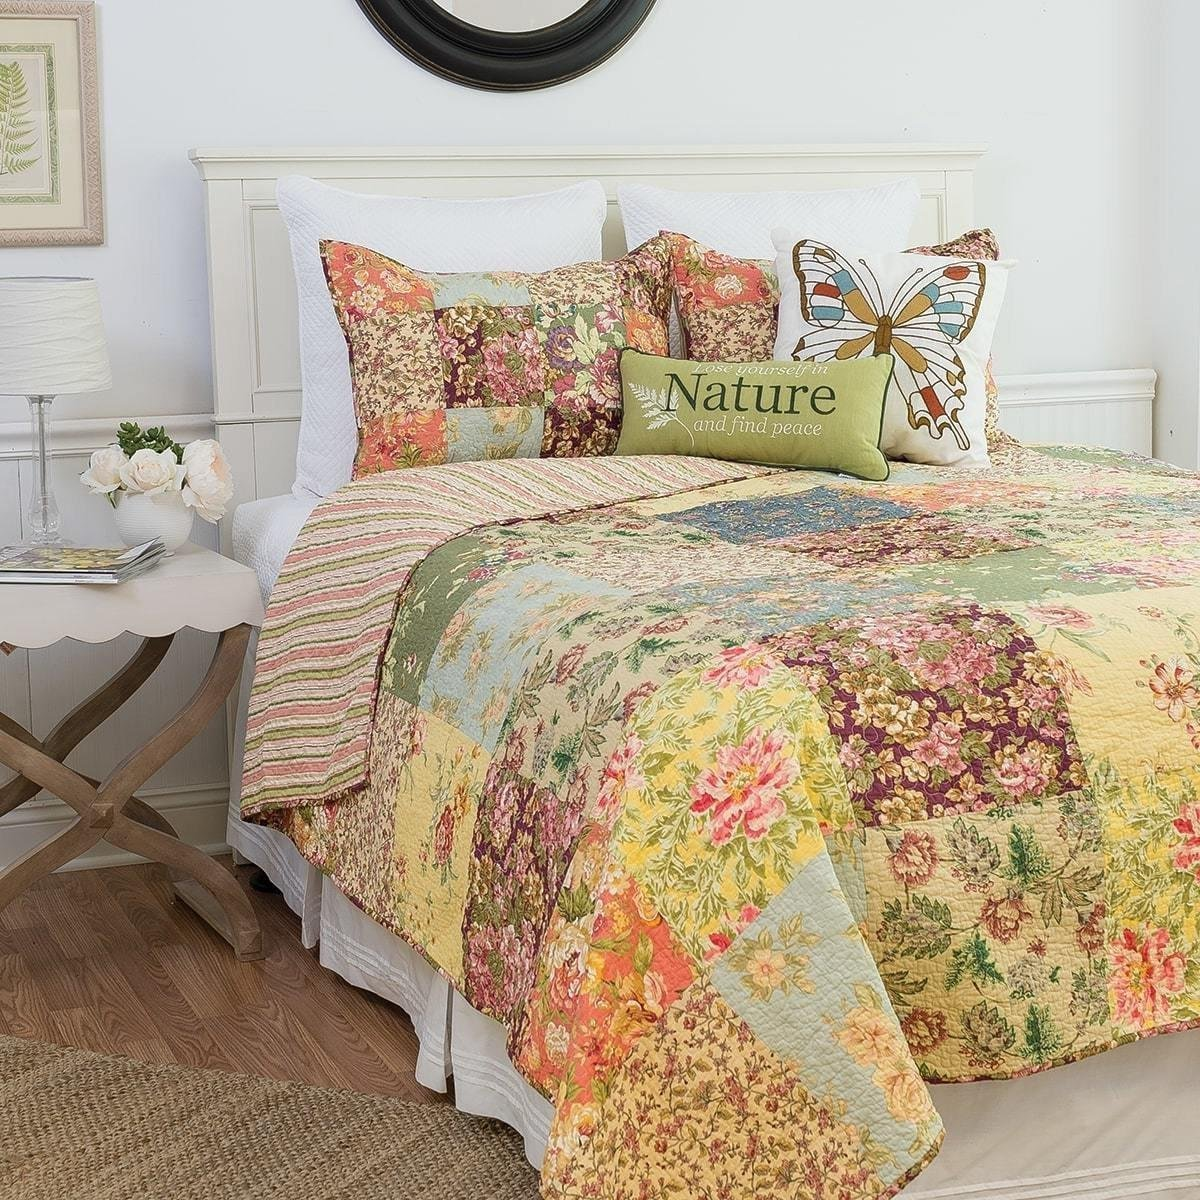 MISC 2pc Shabby Chic Yellow Purple Green Blue Pink Twin Quilt Set, Cotton, Floral Patchwork Themed Bedding Vintage Cottage French Country Stylish Pretty Flower Boho Bohemian Striped